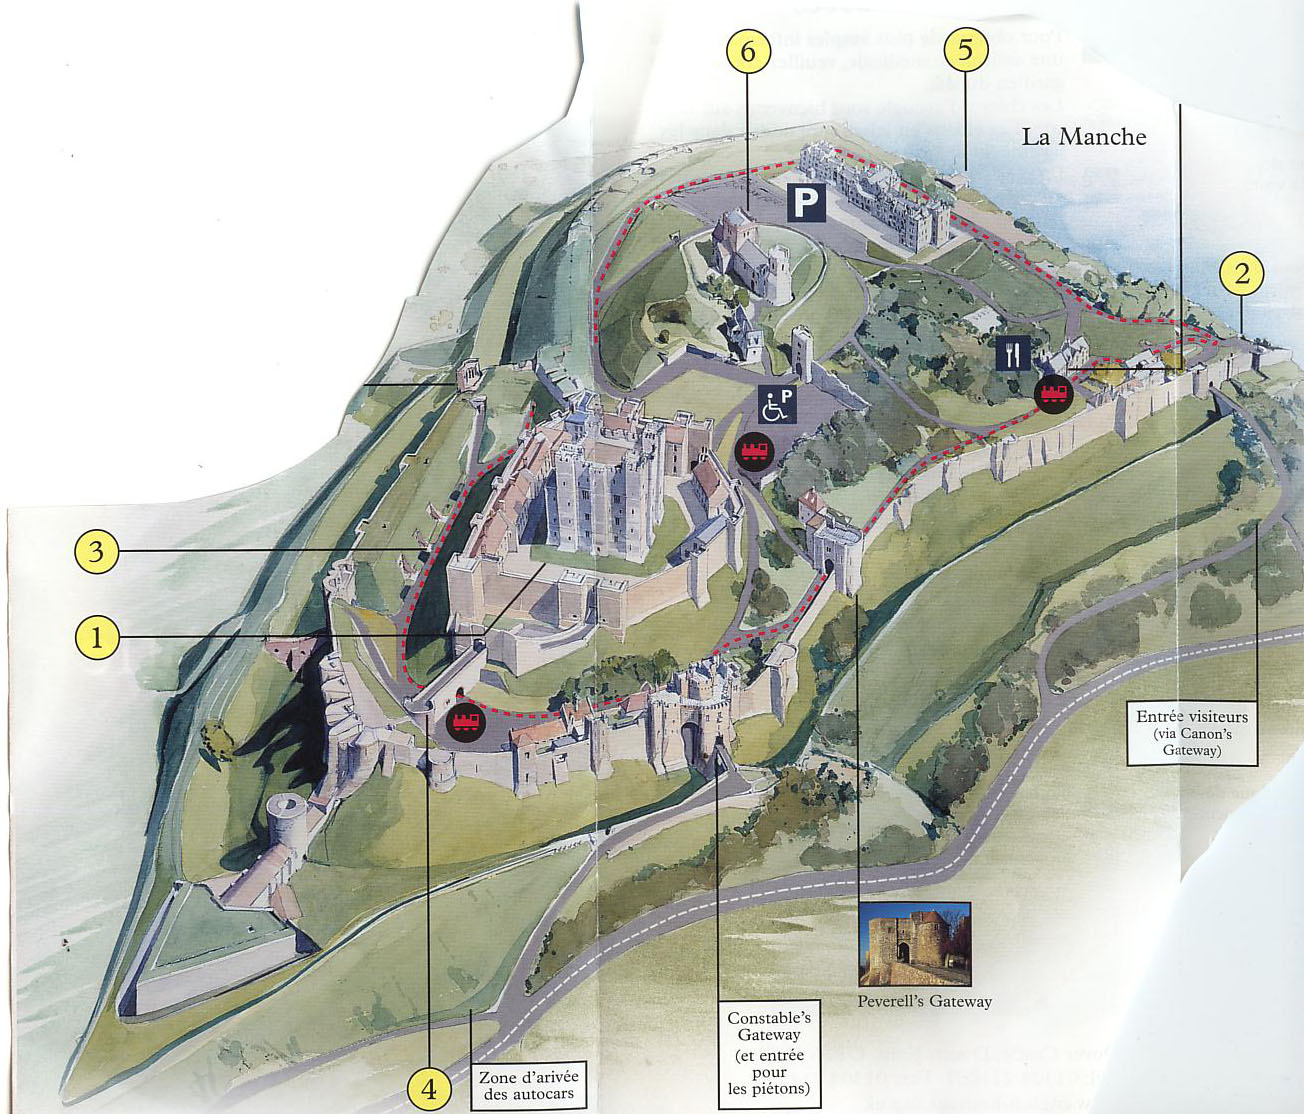 Ventimiglia castles and fortresses on the map